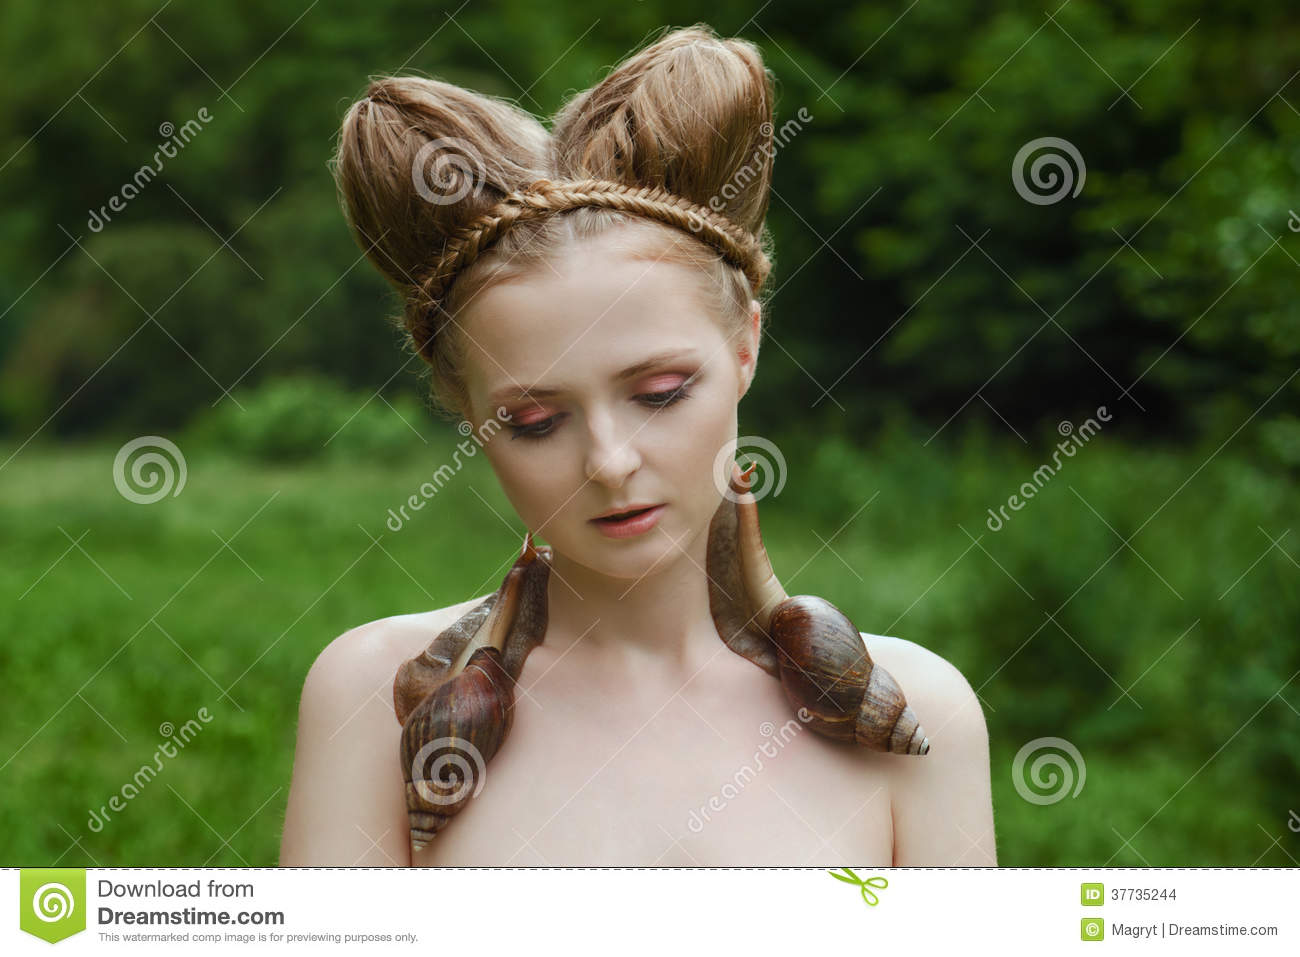 Images naked young woman with fashion hairstyle and two big snails Cute hairstyles for a prom prom hairstyles ideas razitra